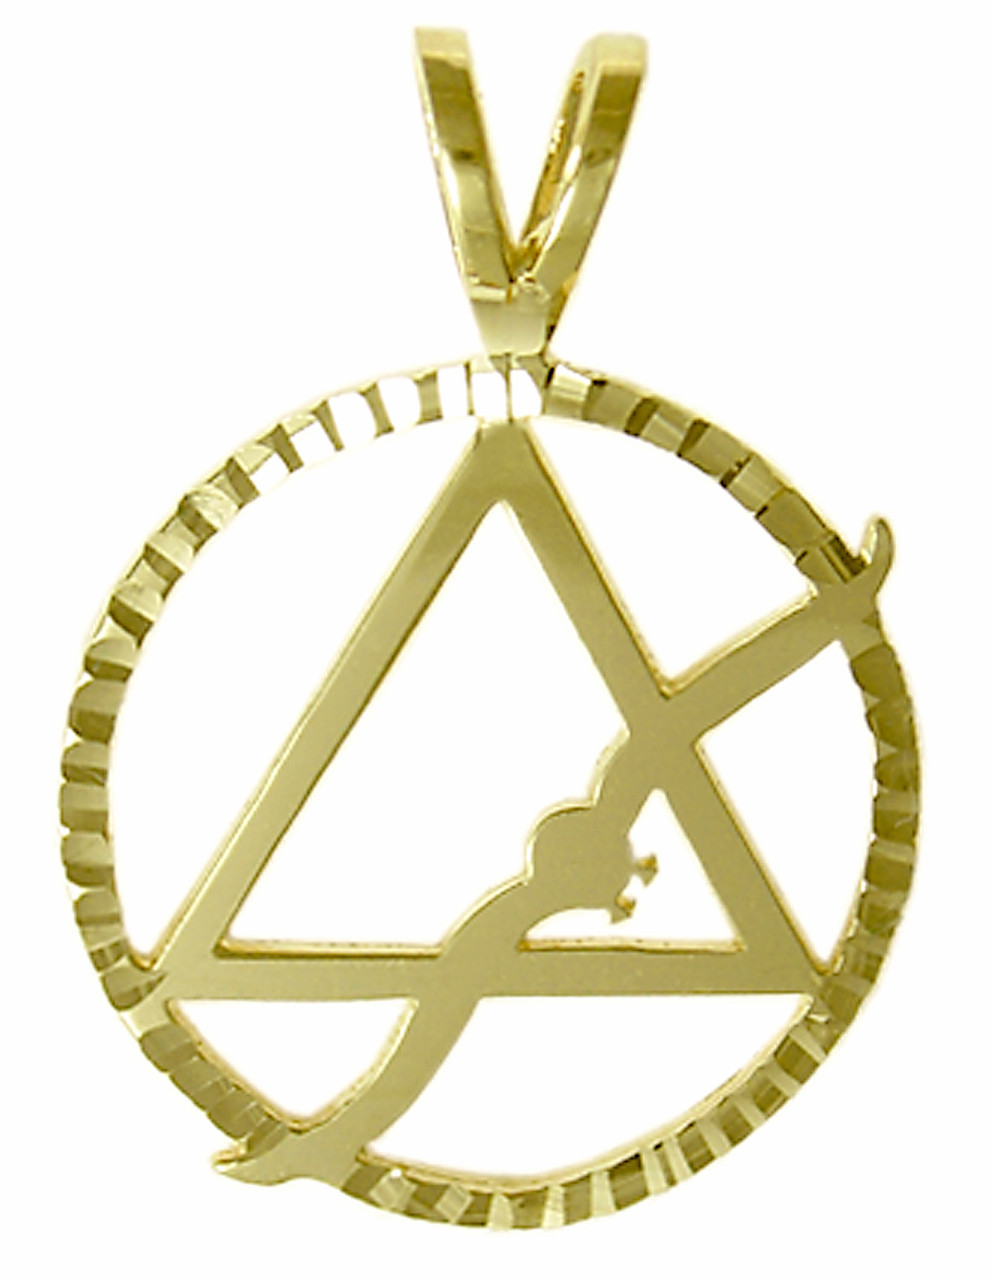 Style 22 4 14k gold aa symbol pendant wflying seagull in a style 22 4 14k gold aa symbol pendant wflying seagull mozeypictures Gallery